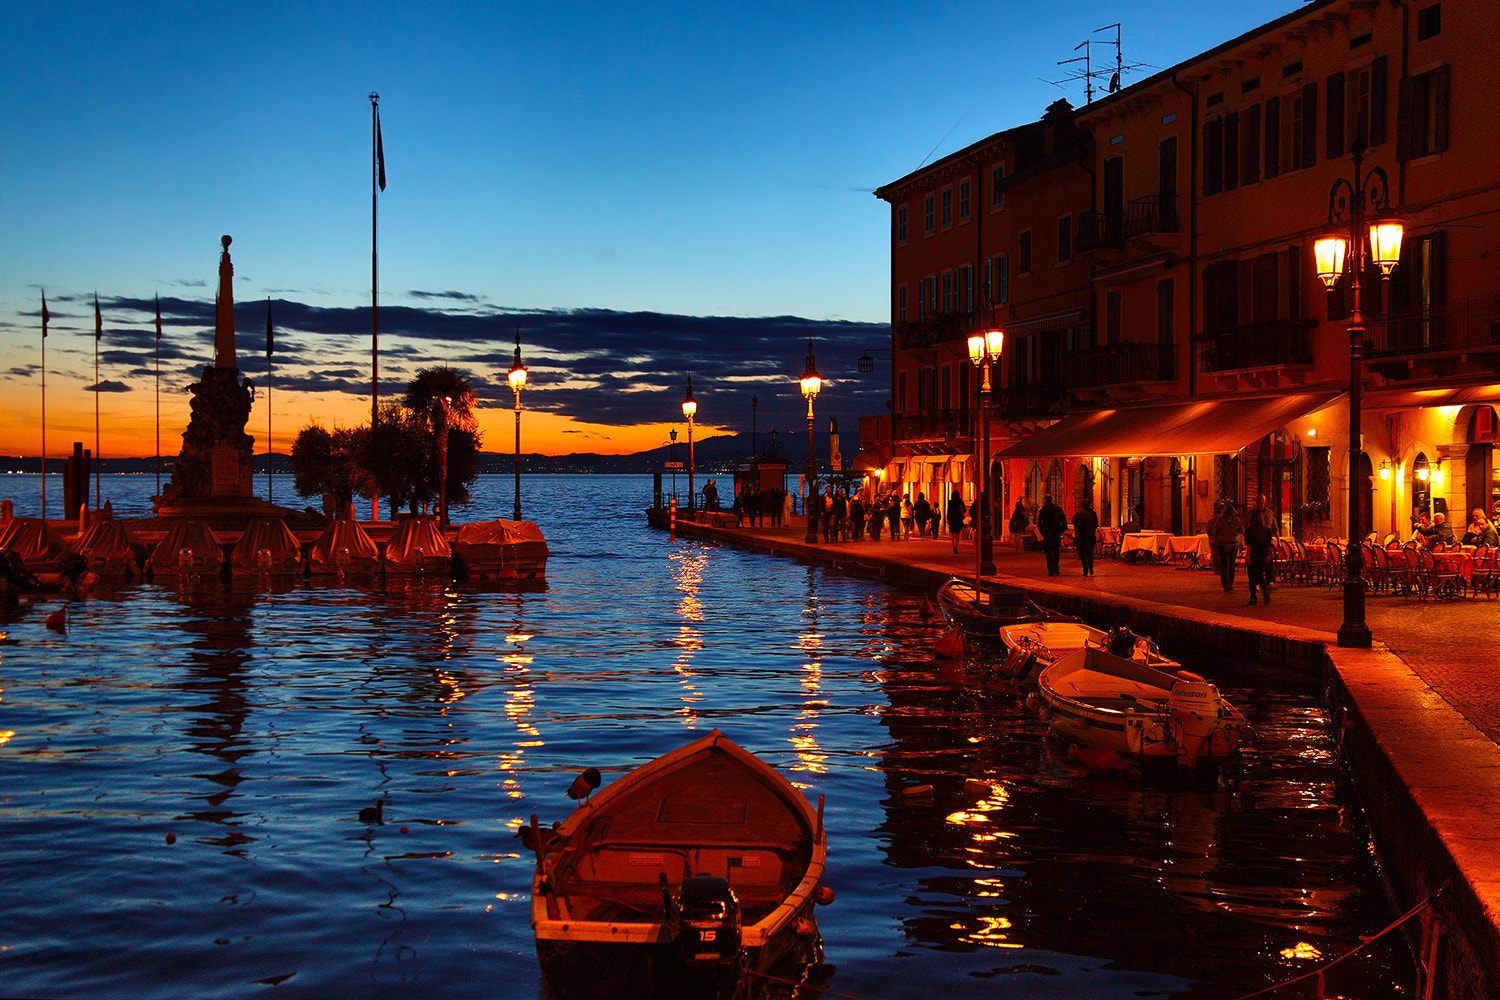 Photograph Sunset at Lazise,Garda Lake by Paolo Guidetti on 500px